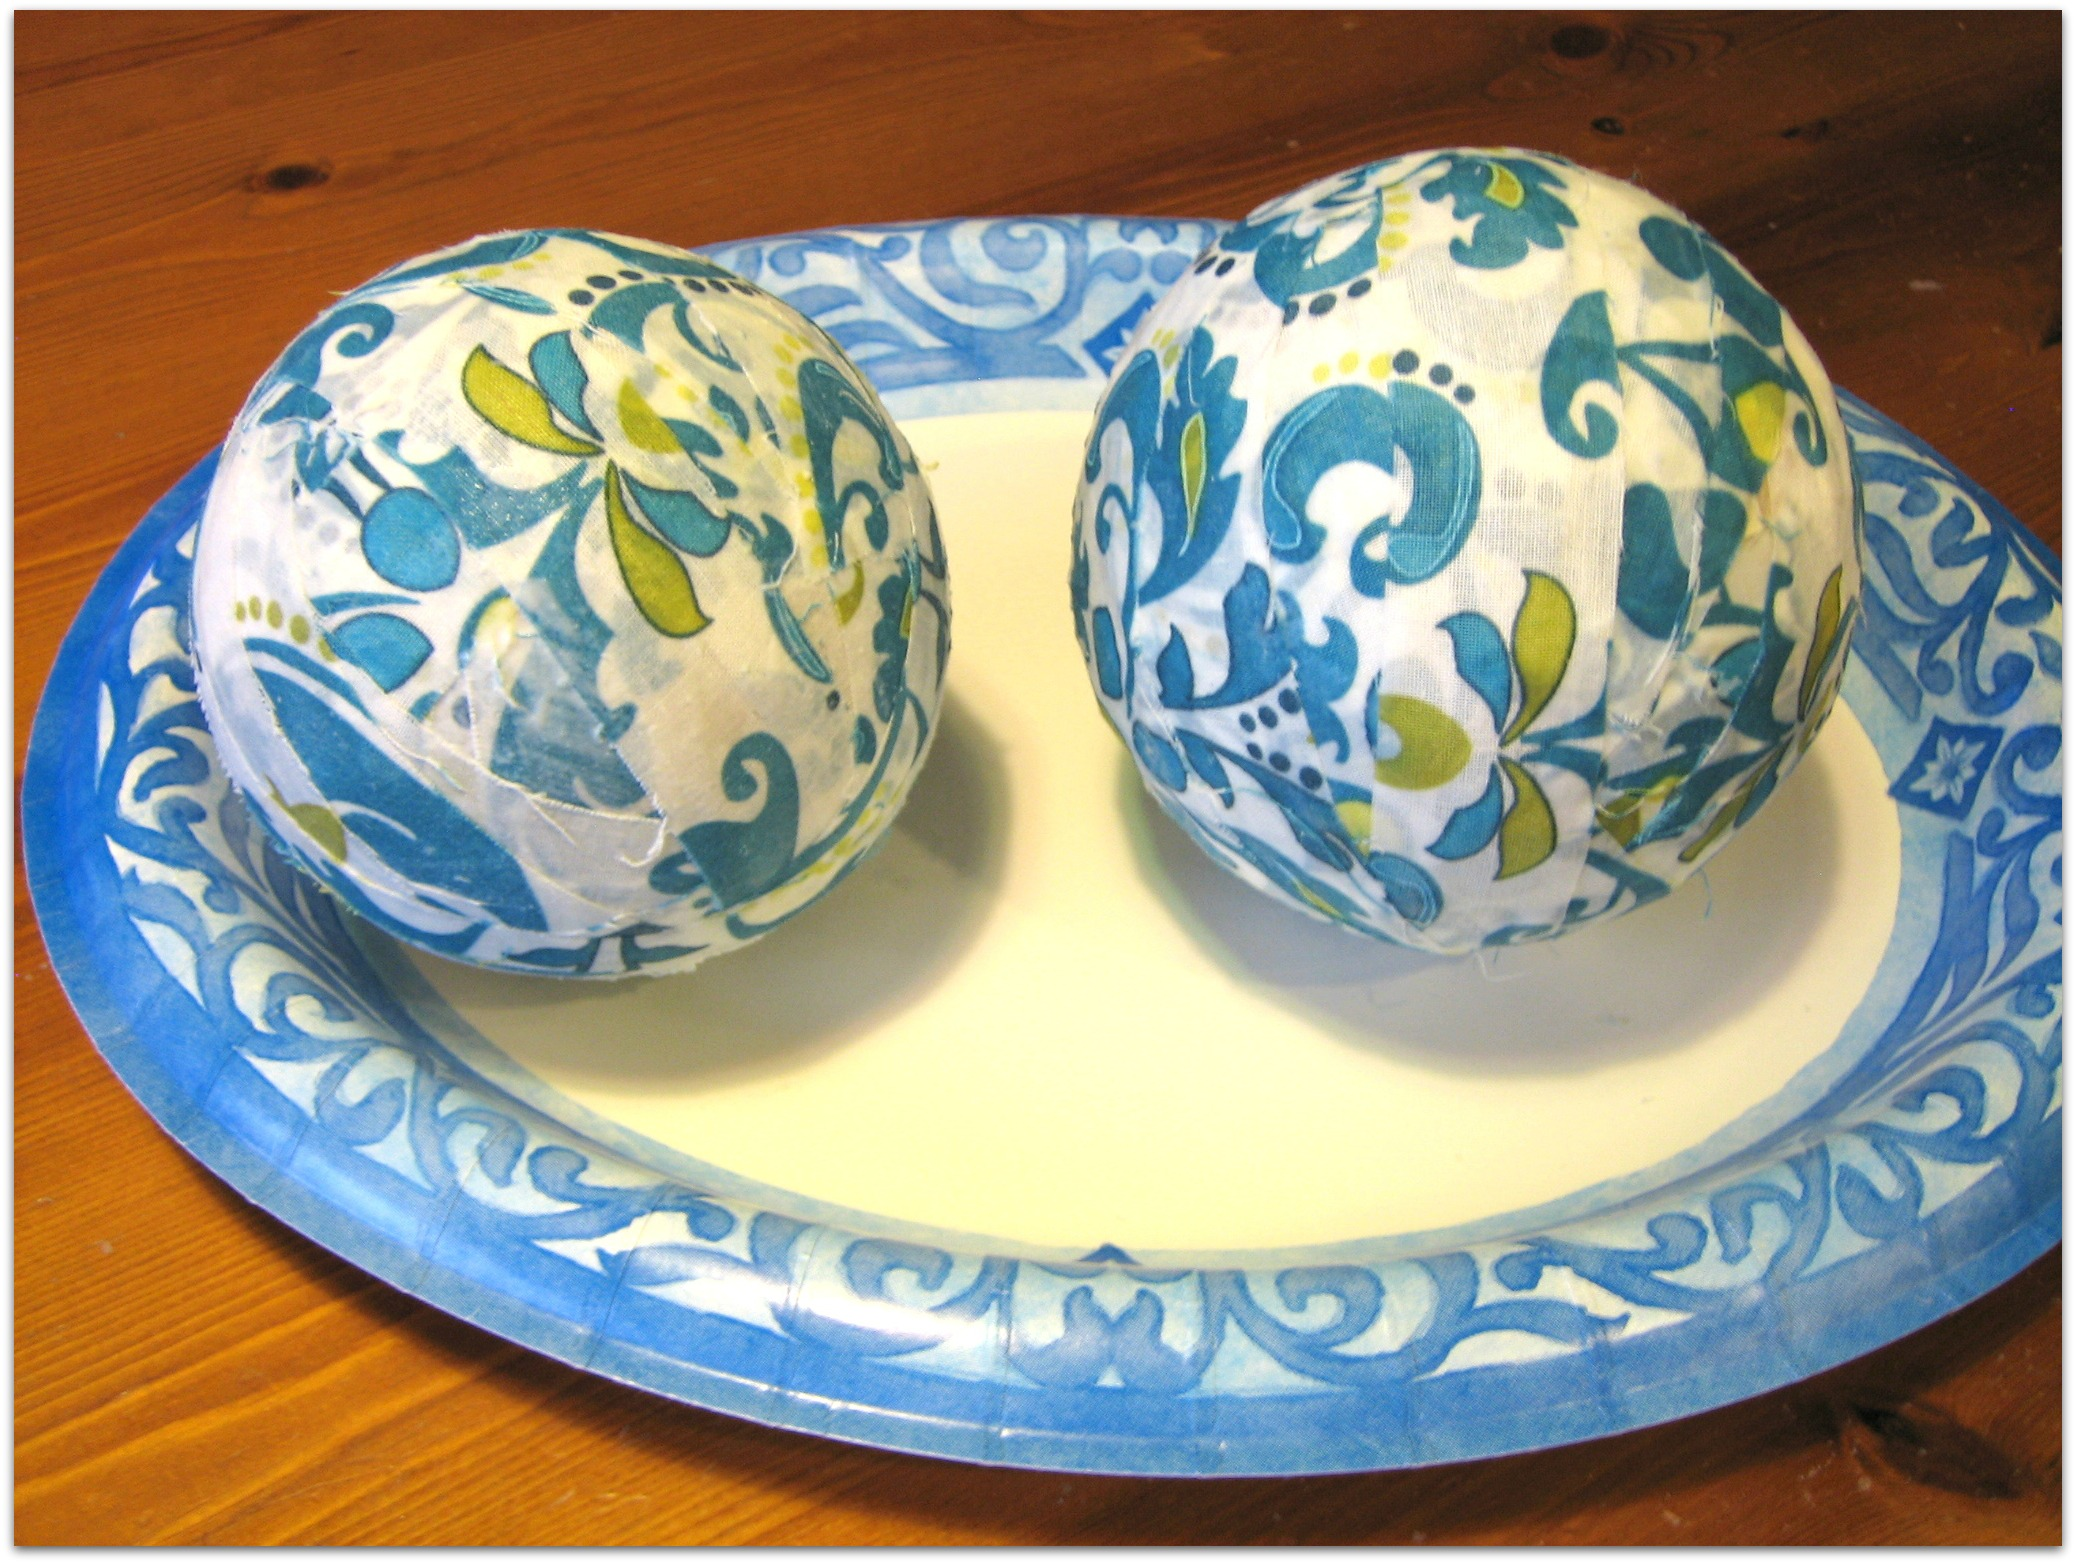 charming and decorative orbs in floral pattern on matching plate for table accessories ideas